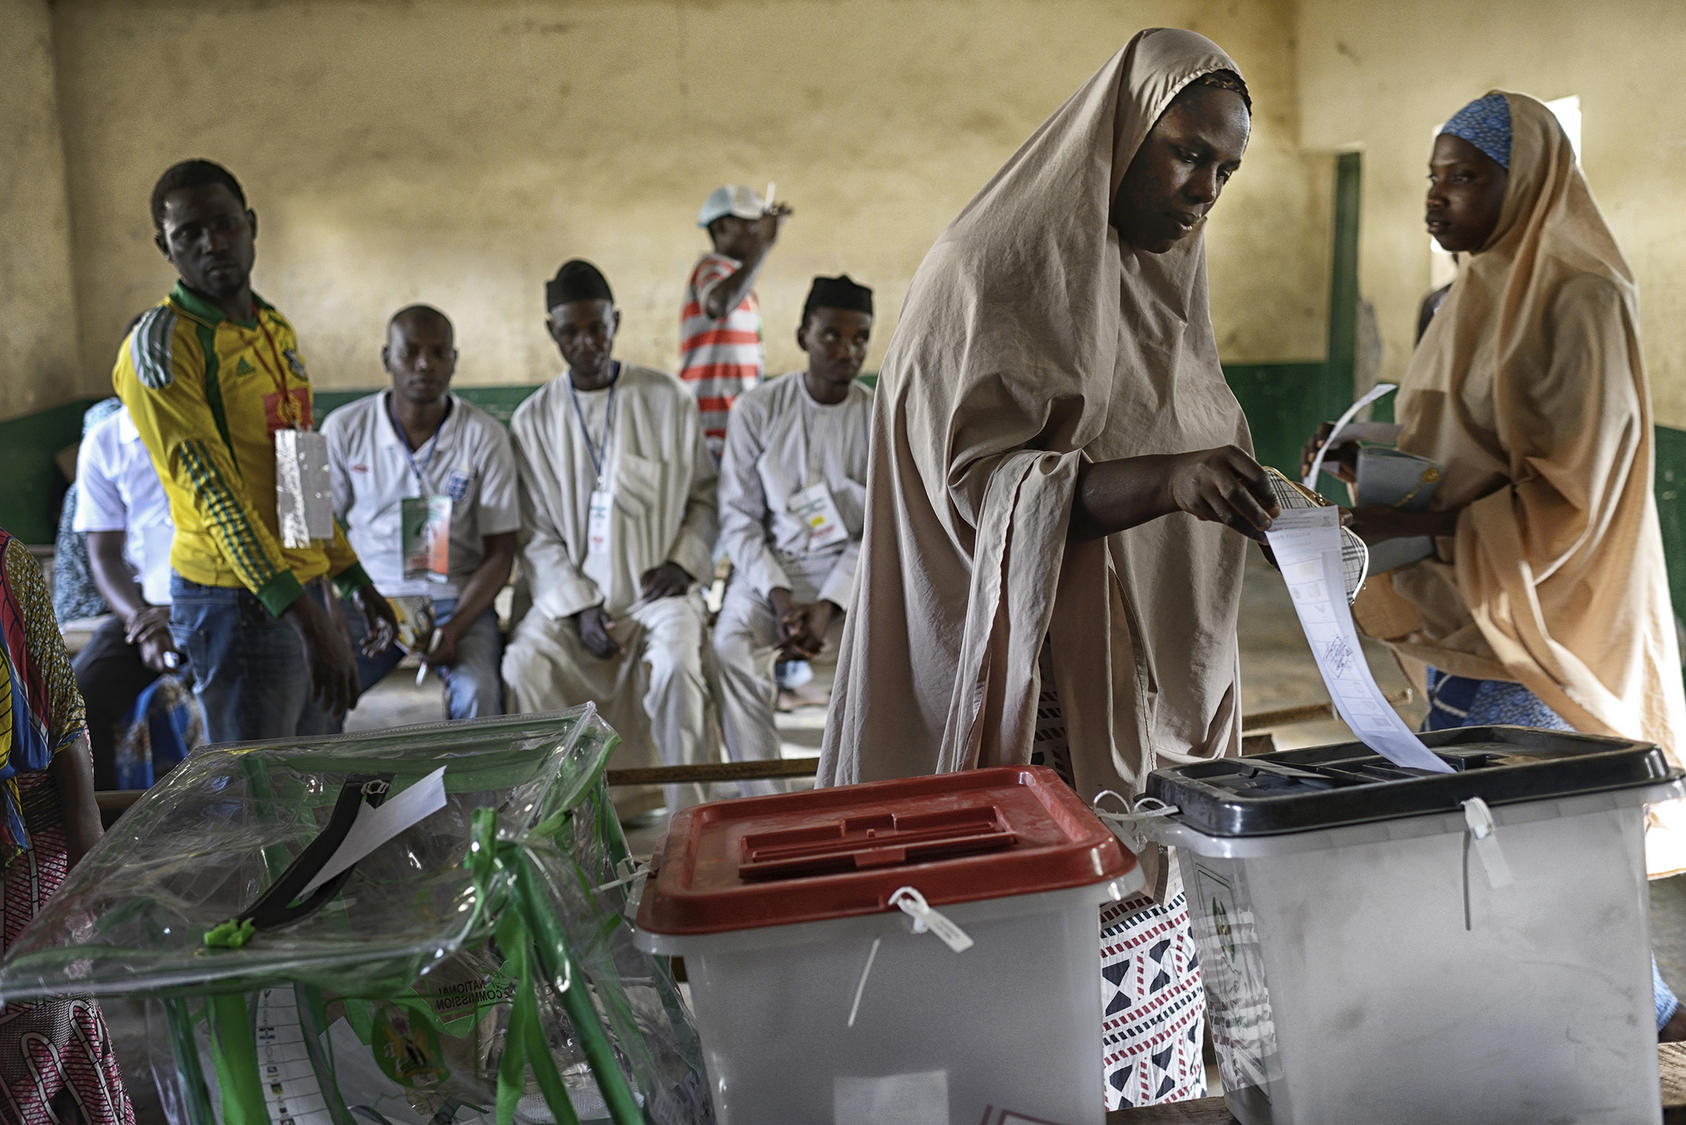 A woman votes at a polling station in Kano, Nigeria, March 28, 2015. (Samuel Aranda/The New York Times)